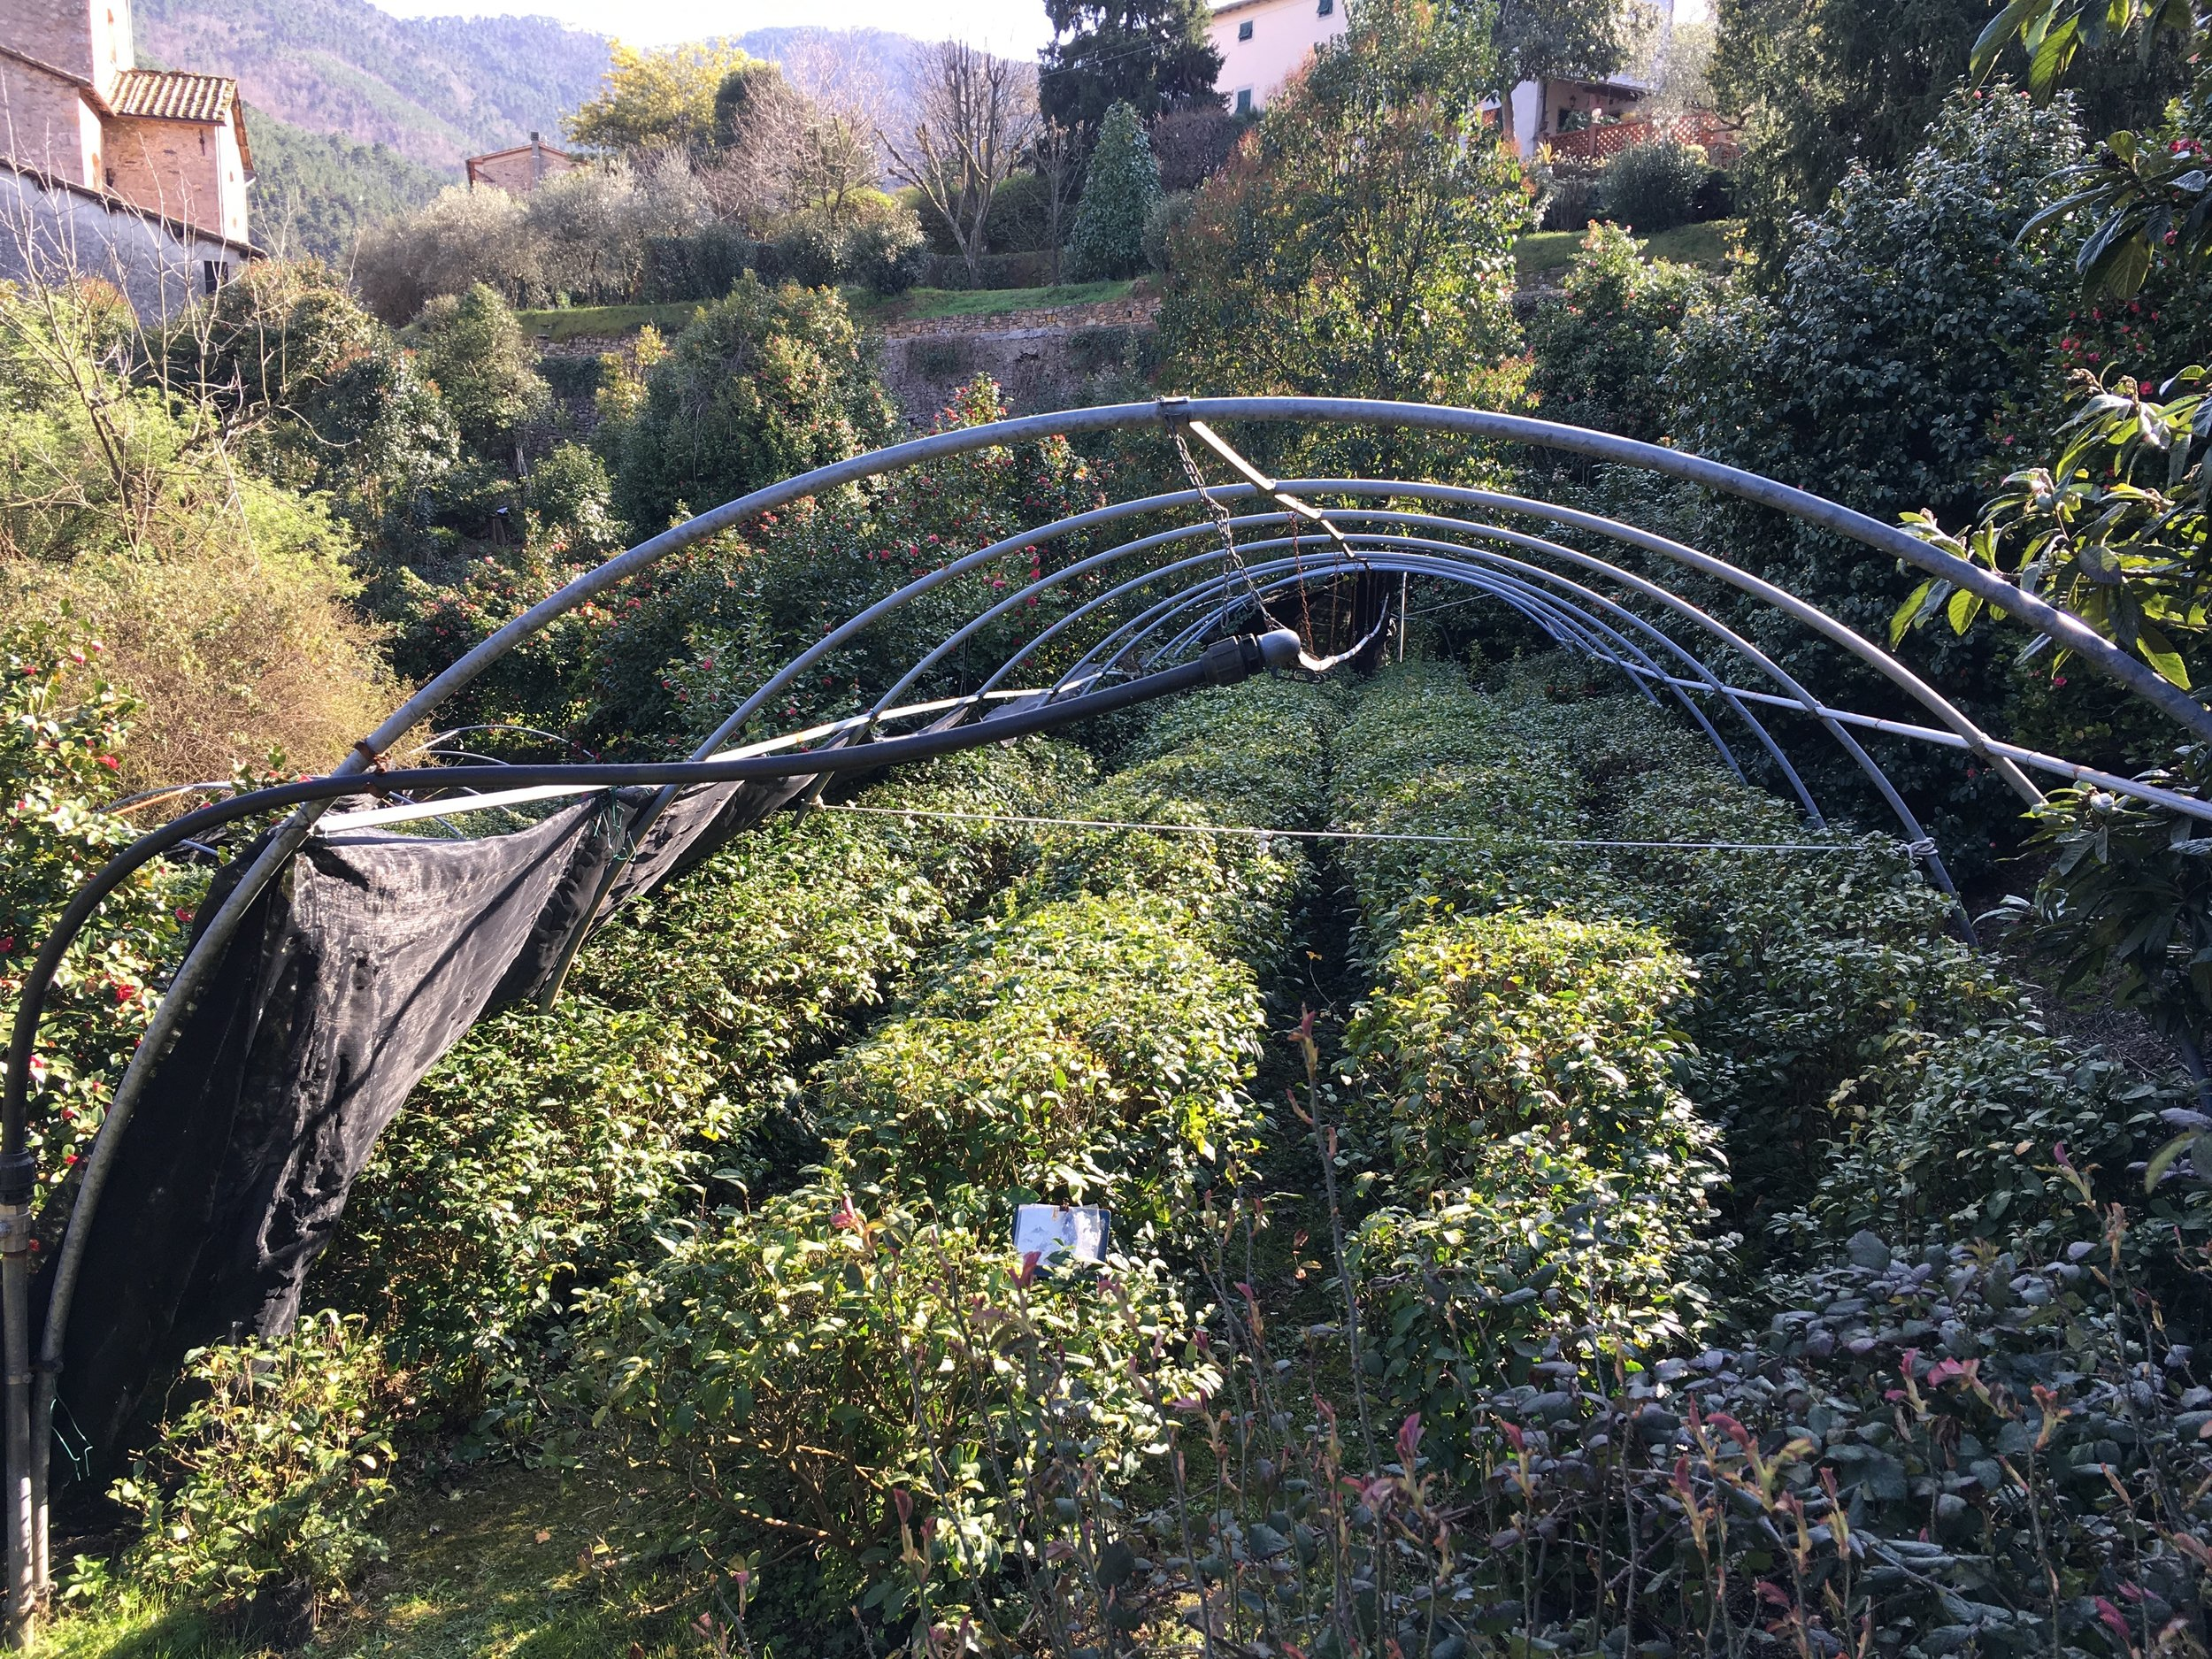 Tea plants are raised in the Antica Chiusa Borrini, a large walled garden in Sant'Andrea di Compito.